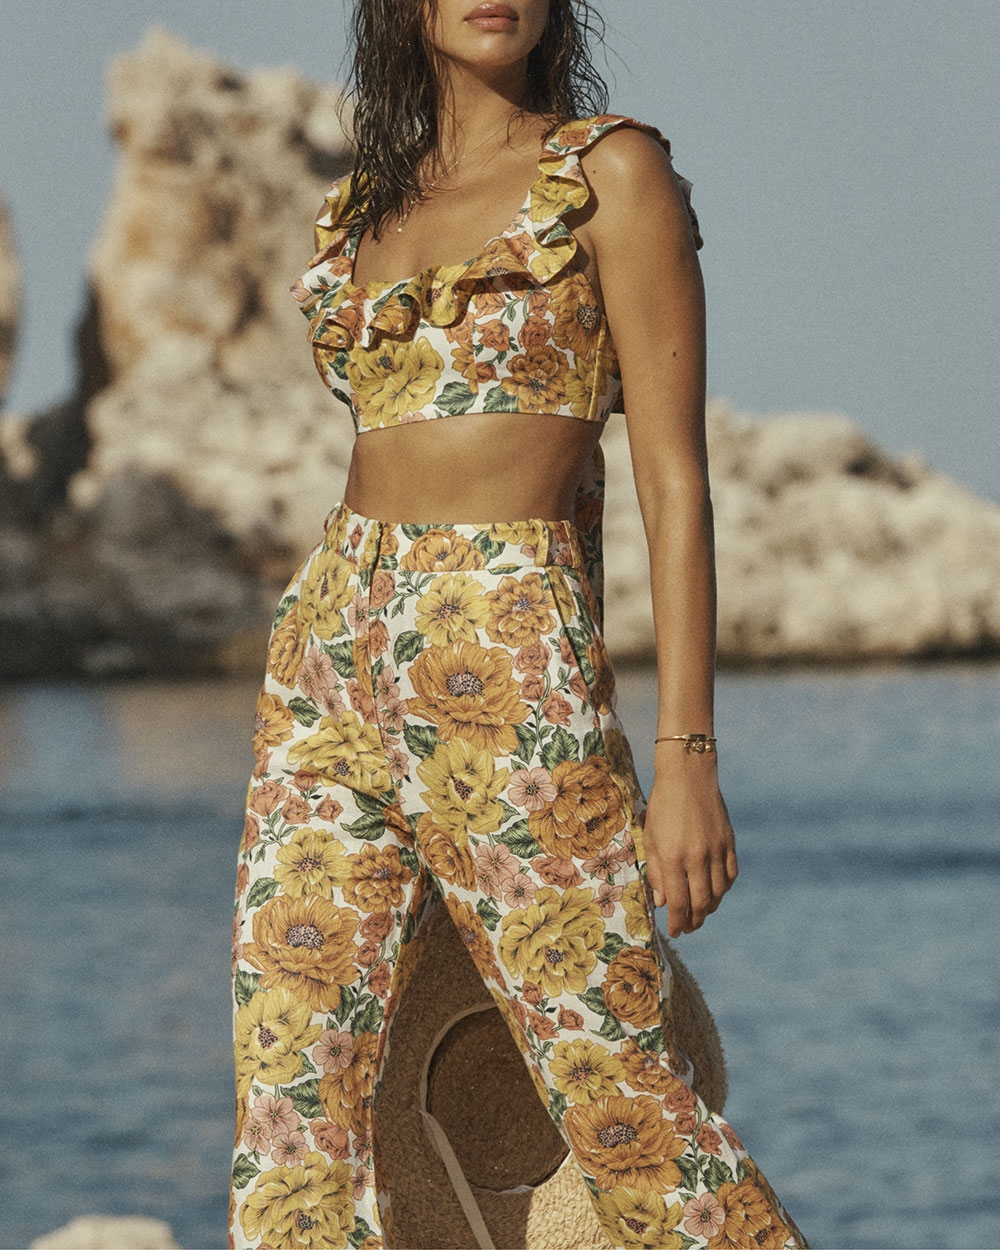 Irina in the Poppy Crop and Flare Pant in Golden Floral in Scopello